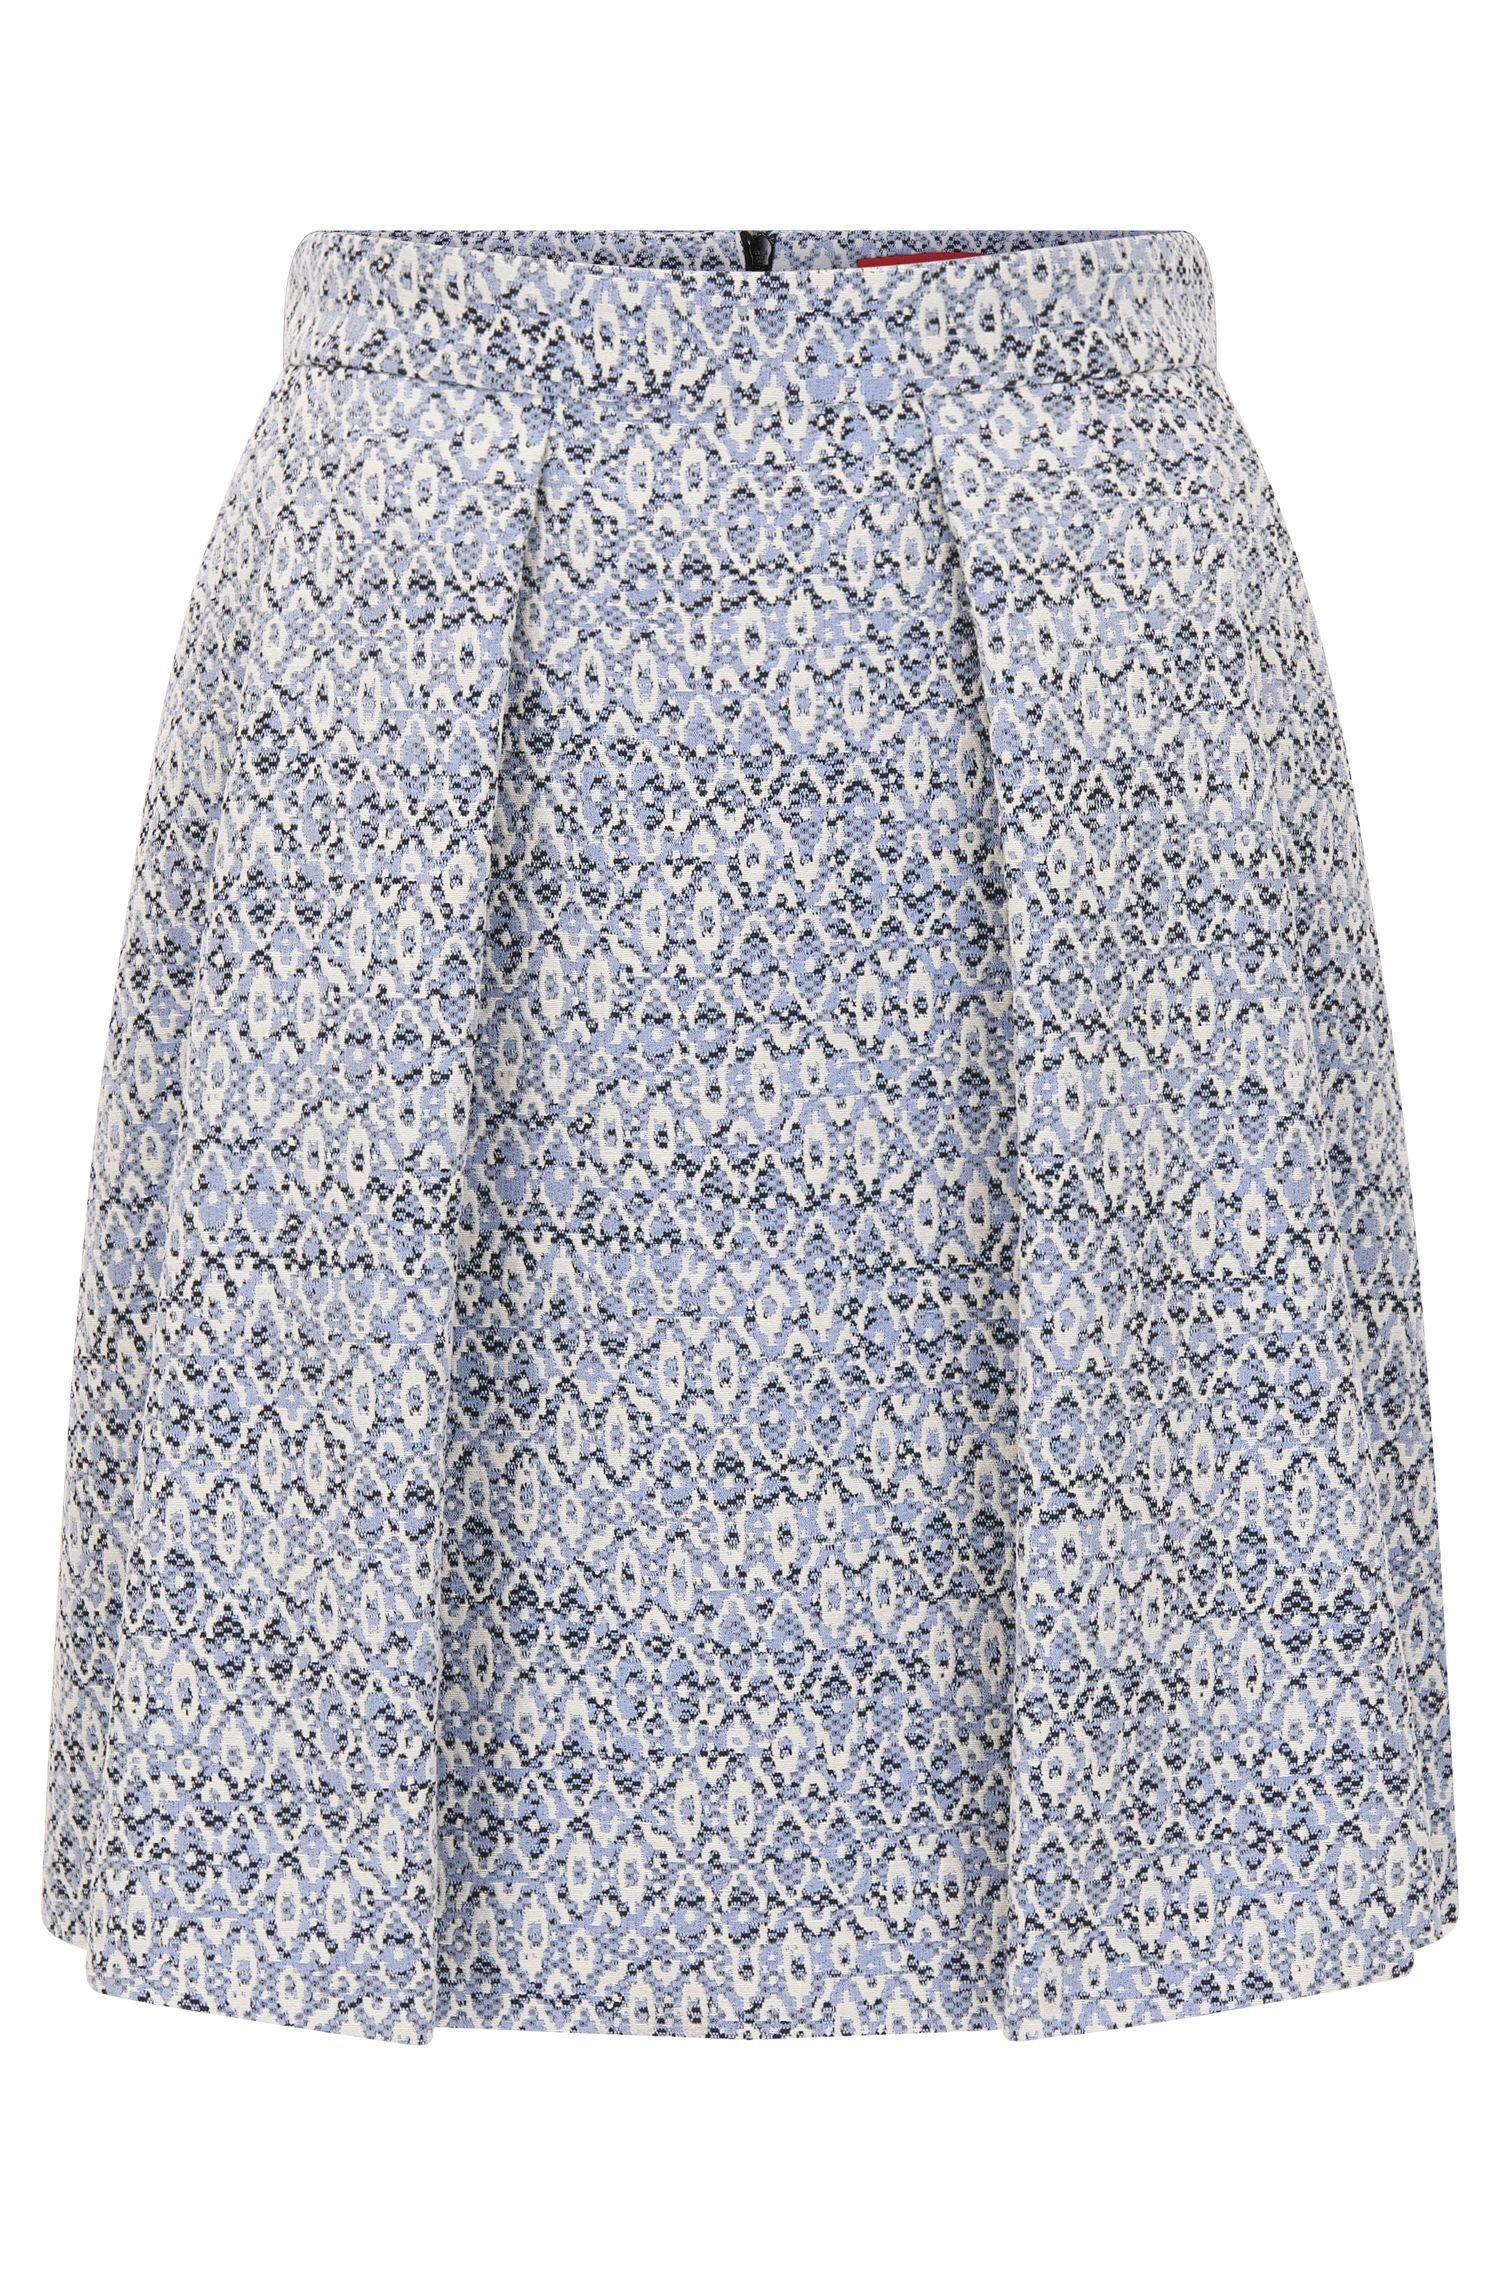 Regular-fit rok in jacquard van een katoenmix